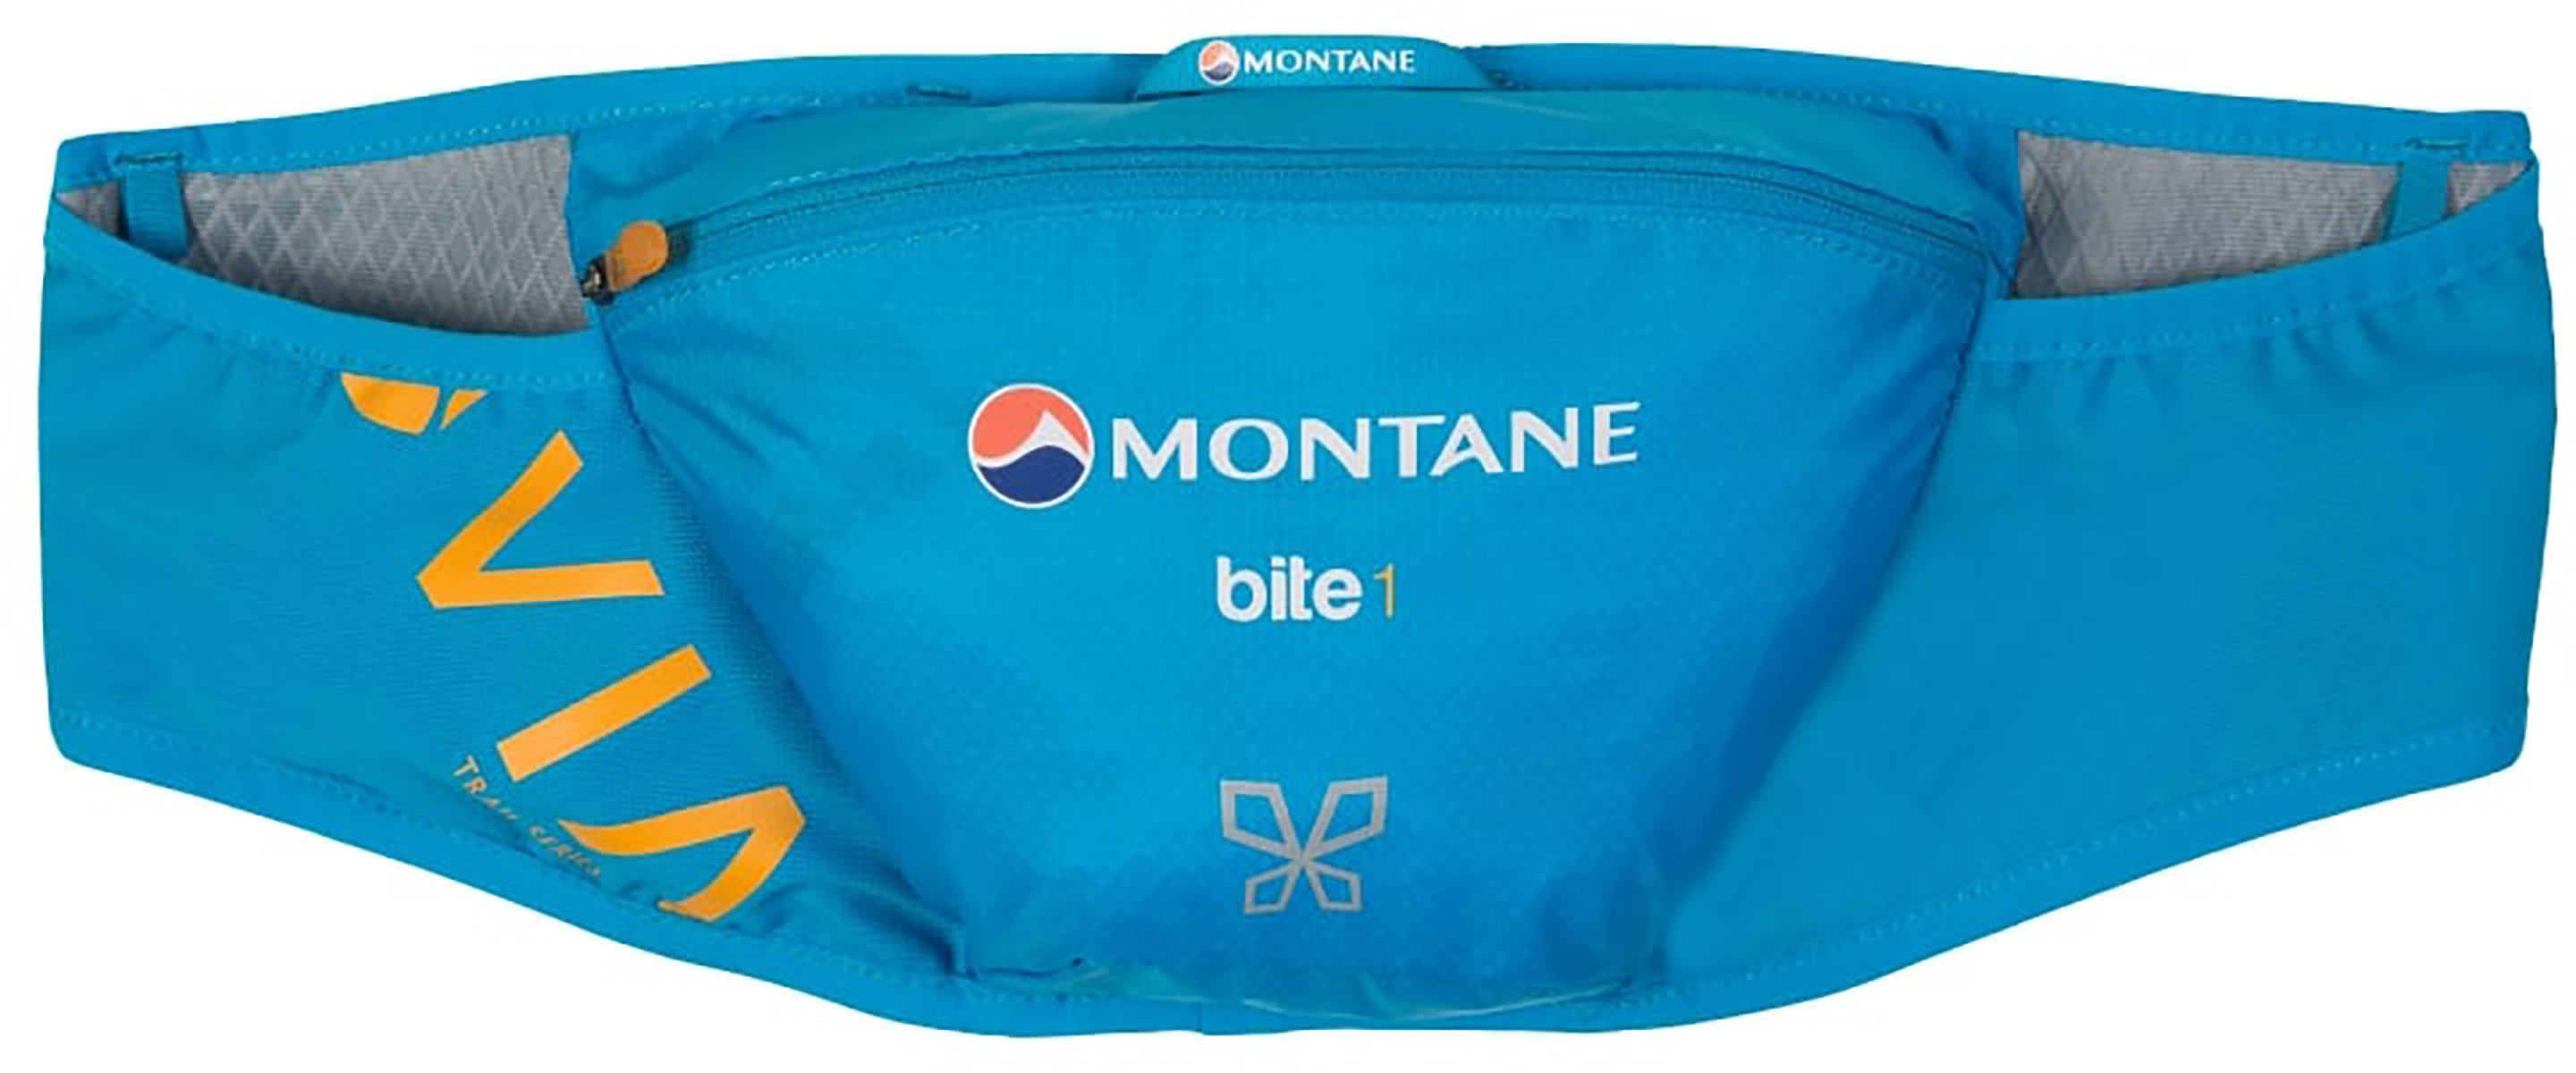 Montane VIA Bite 1 Waist Bag | Waist bags